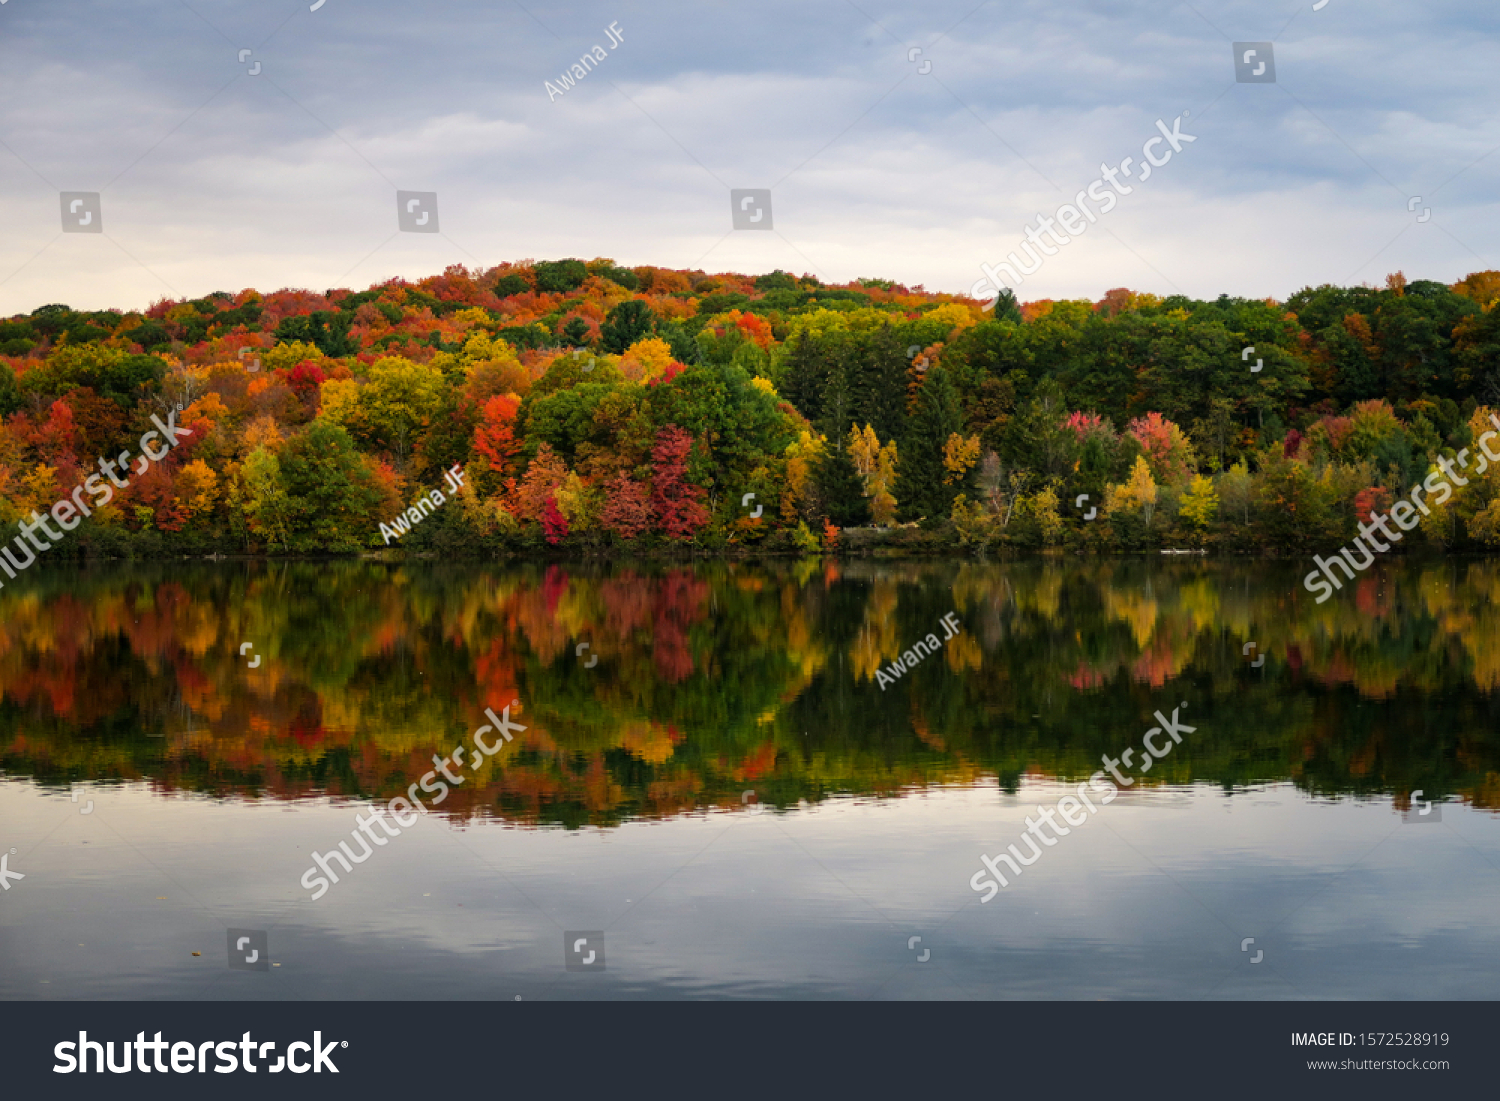 stock-photo-colorful-and-autumnal-trees-